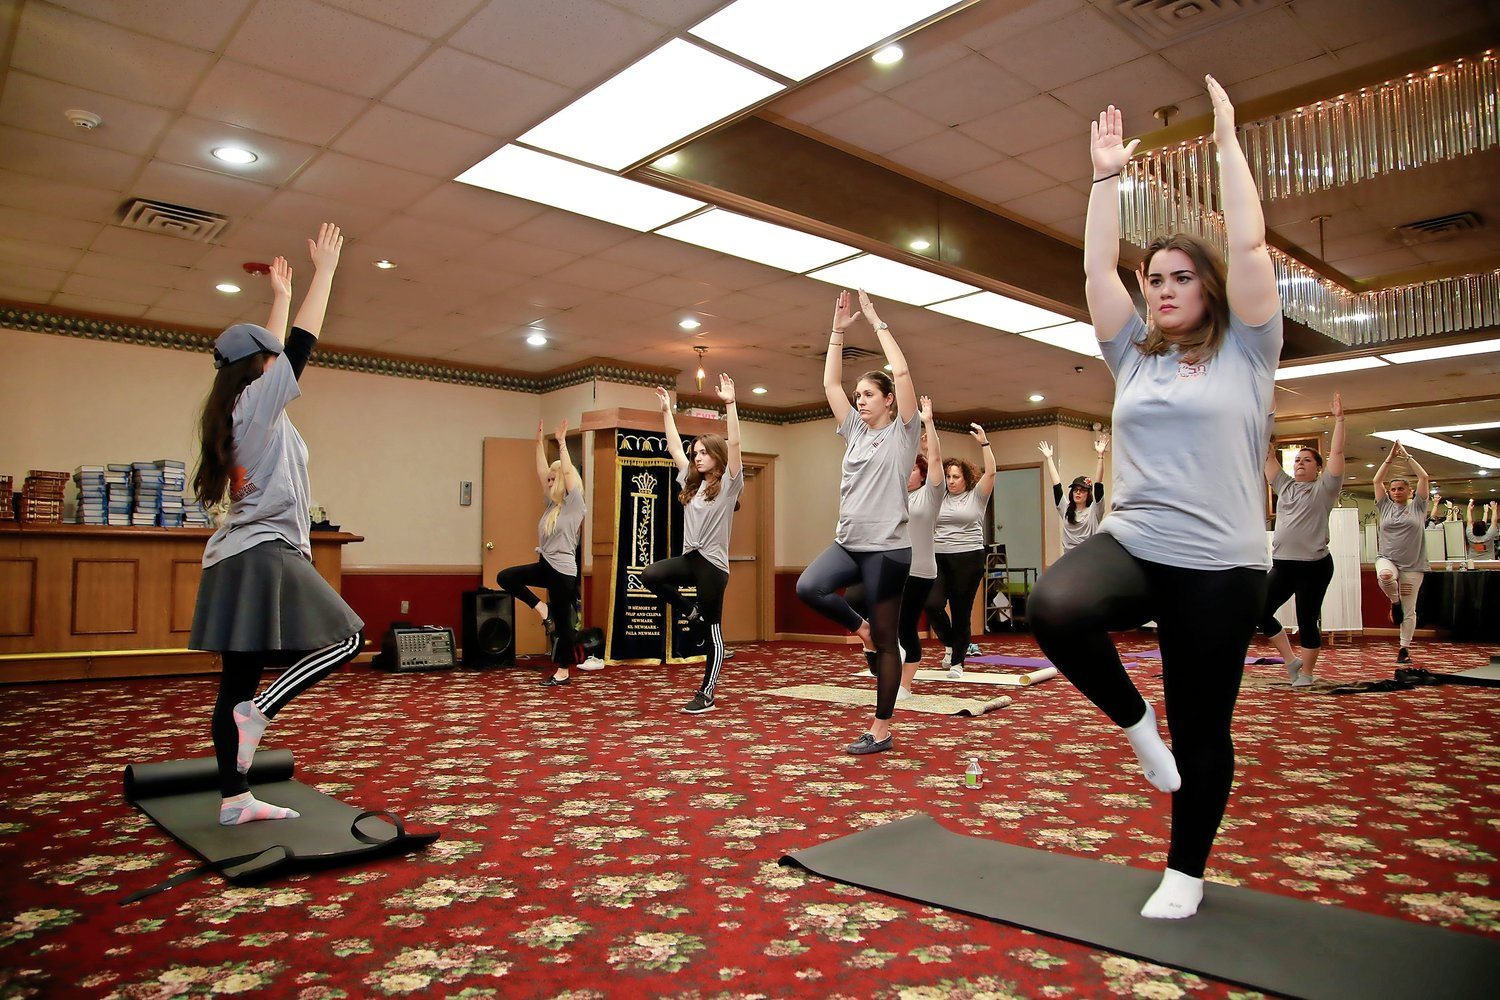 Barbara Mezrahi, far left, led the Chabad Women's Circle in yoga at the Chabad of Valley Stream's pre-Passover event on April 3.